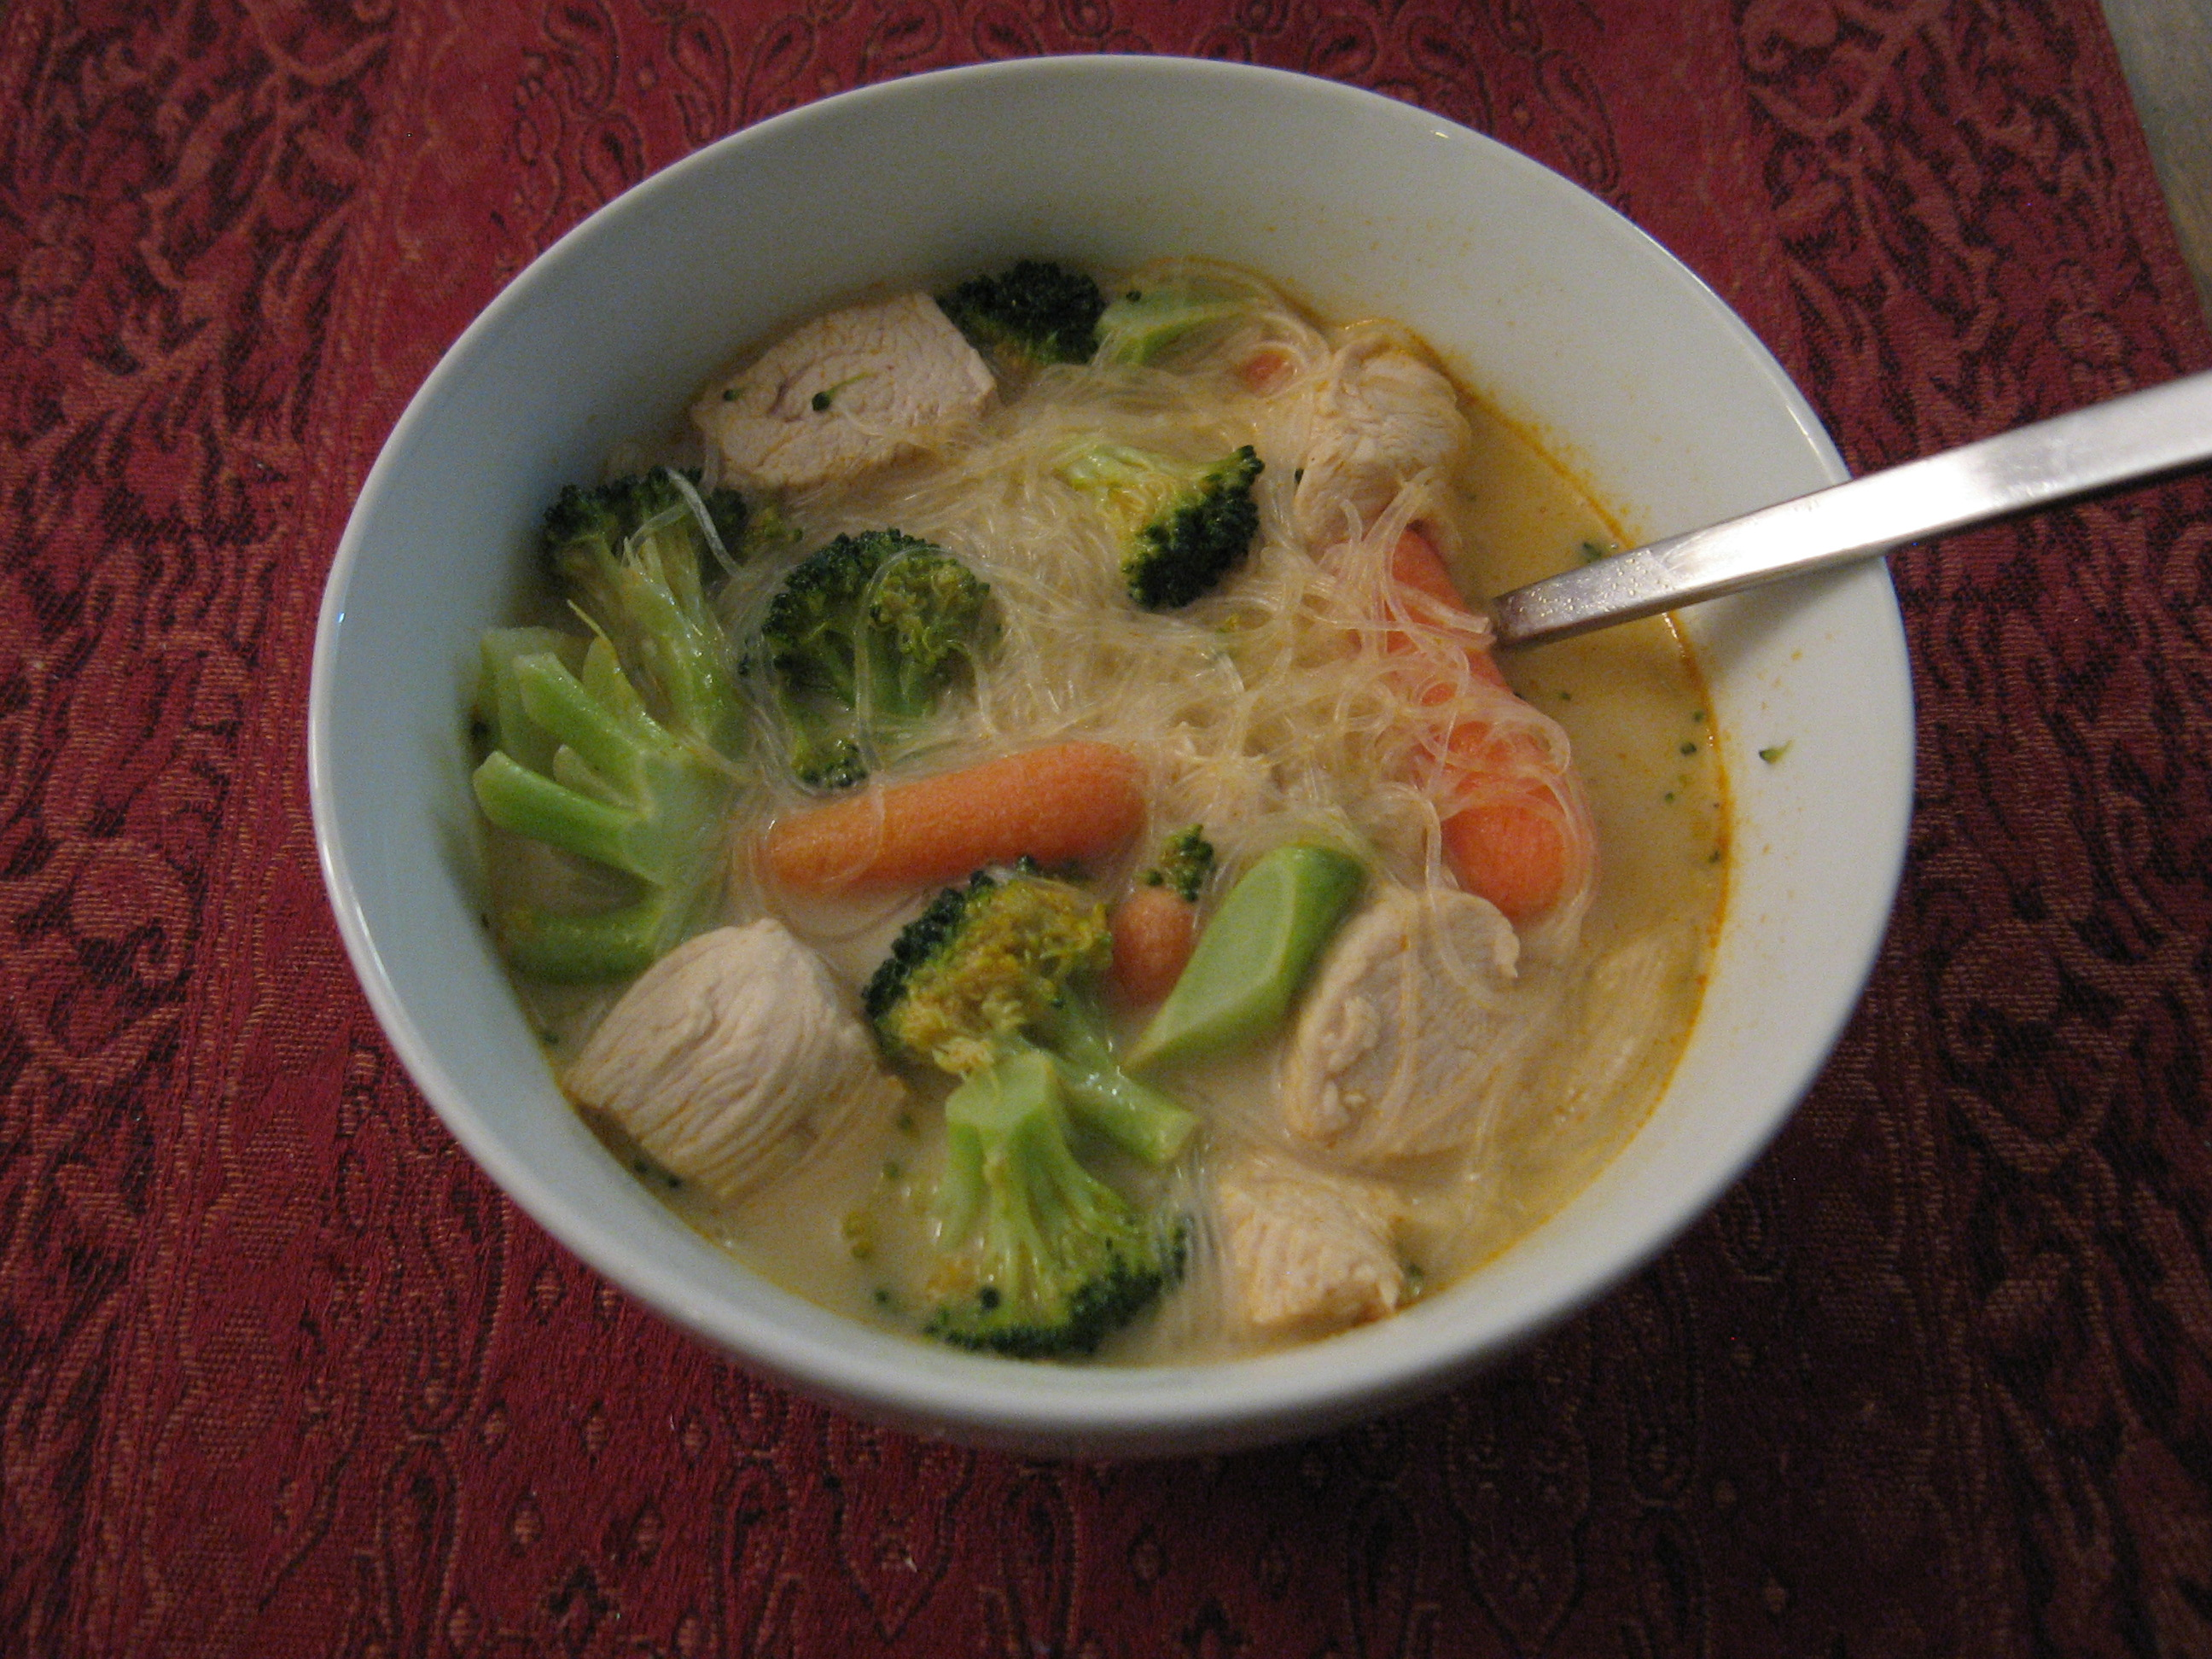 Thai Tom Kha Gai soup with Chicken and Rice Vermicelli Noodles